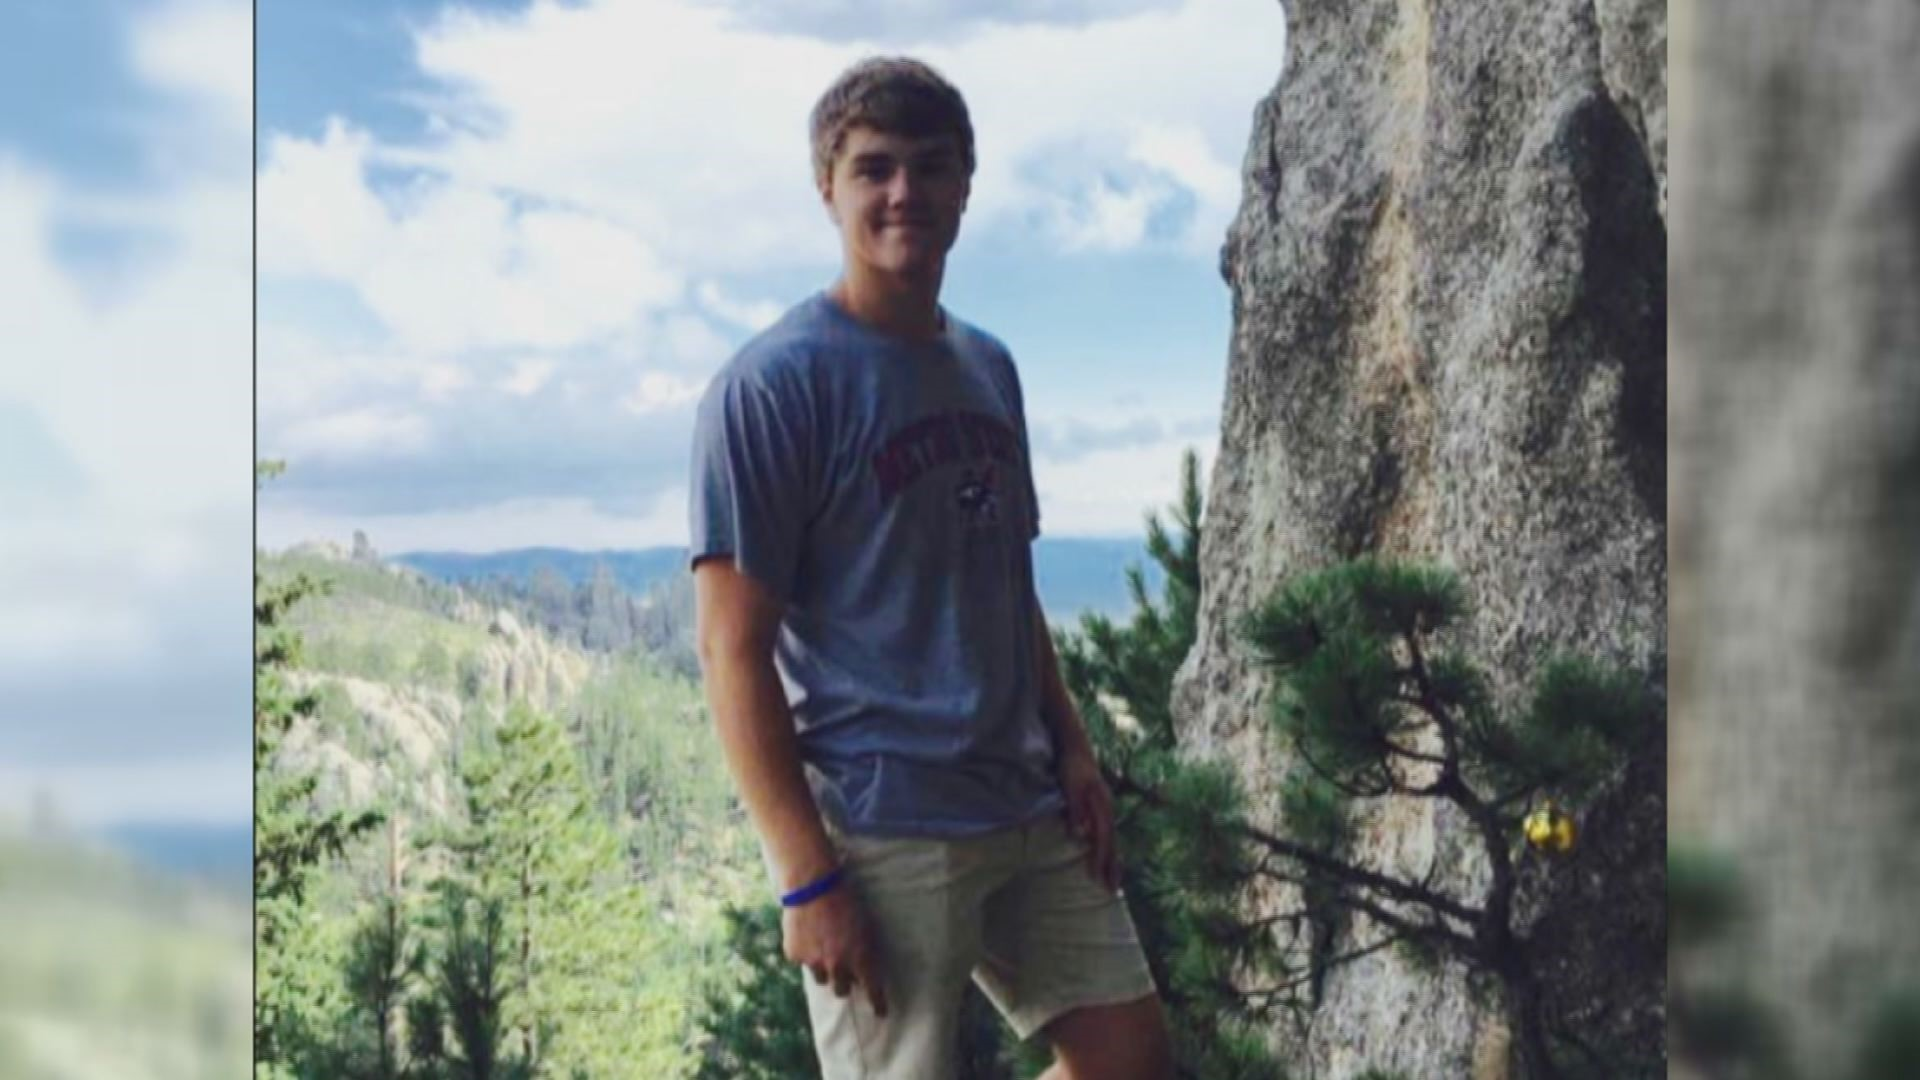 Cause of Death Released In Roswell Teen Shootings